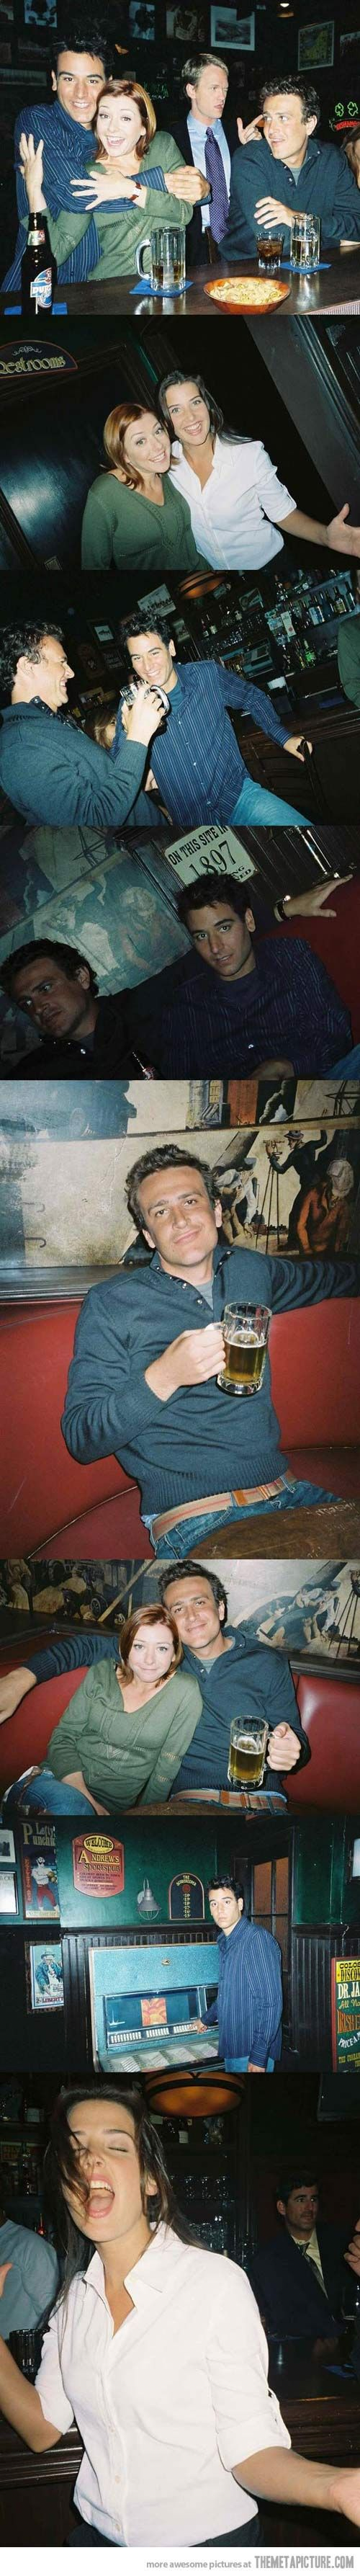 The original photos from the opening of HIMYM….. Why is jason Segel so hot?!